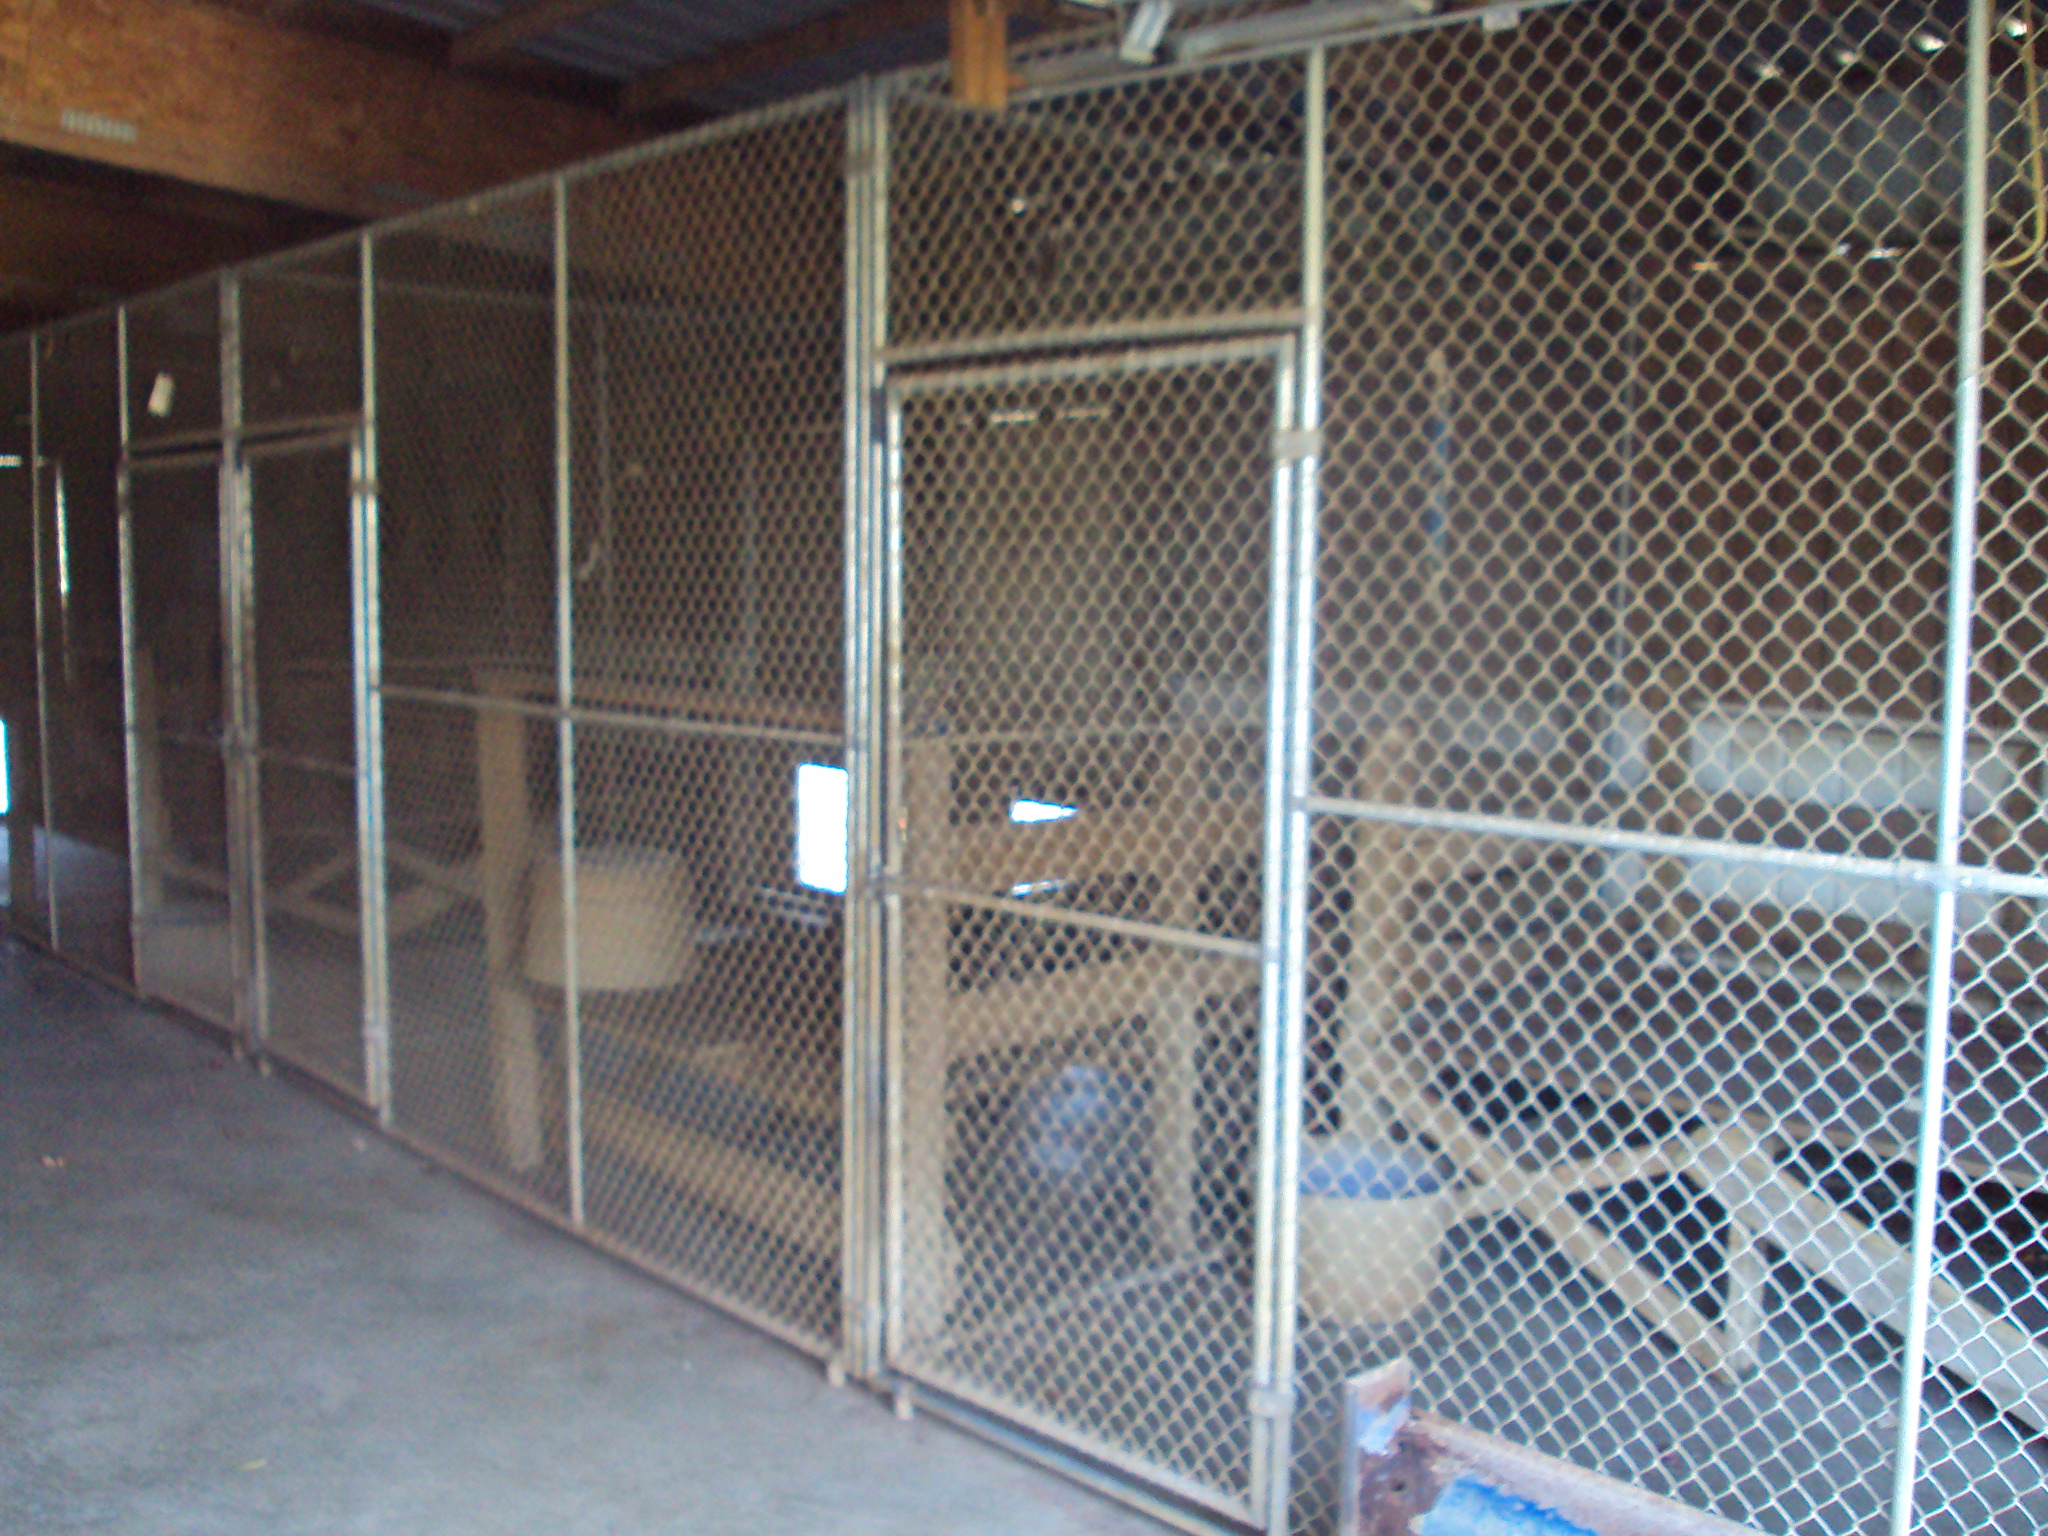 Beech Grove Stable and Kennels